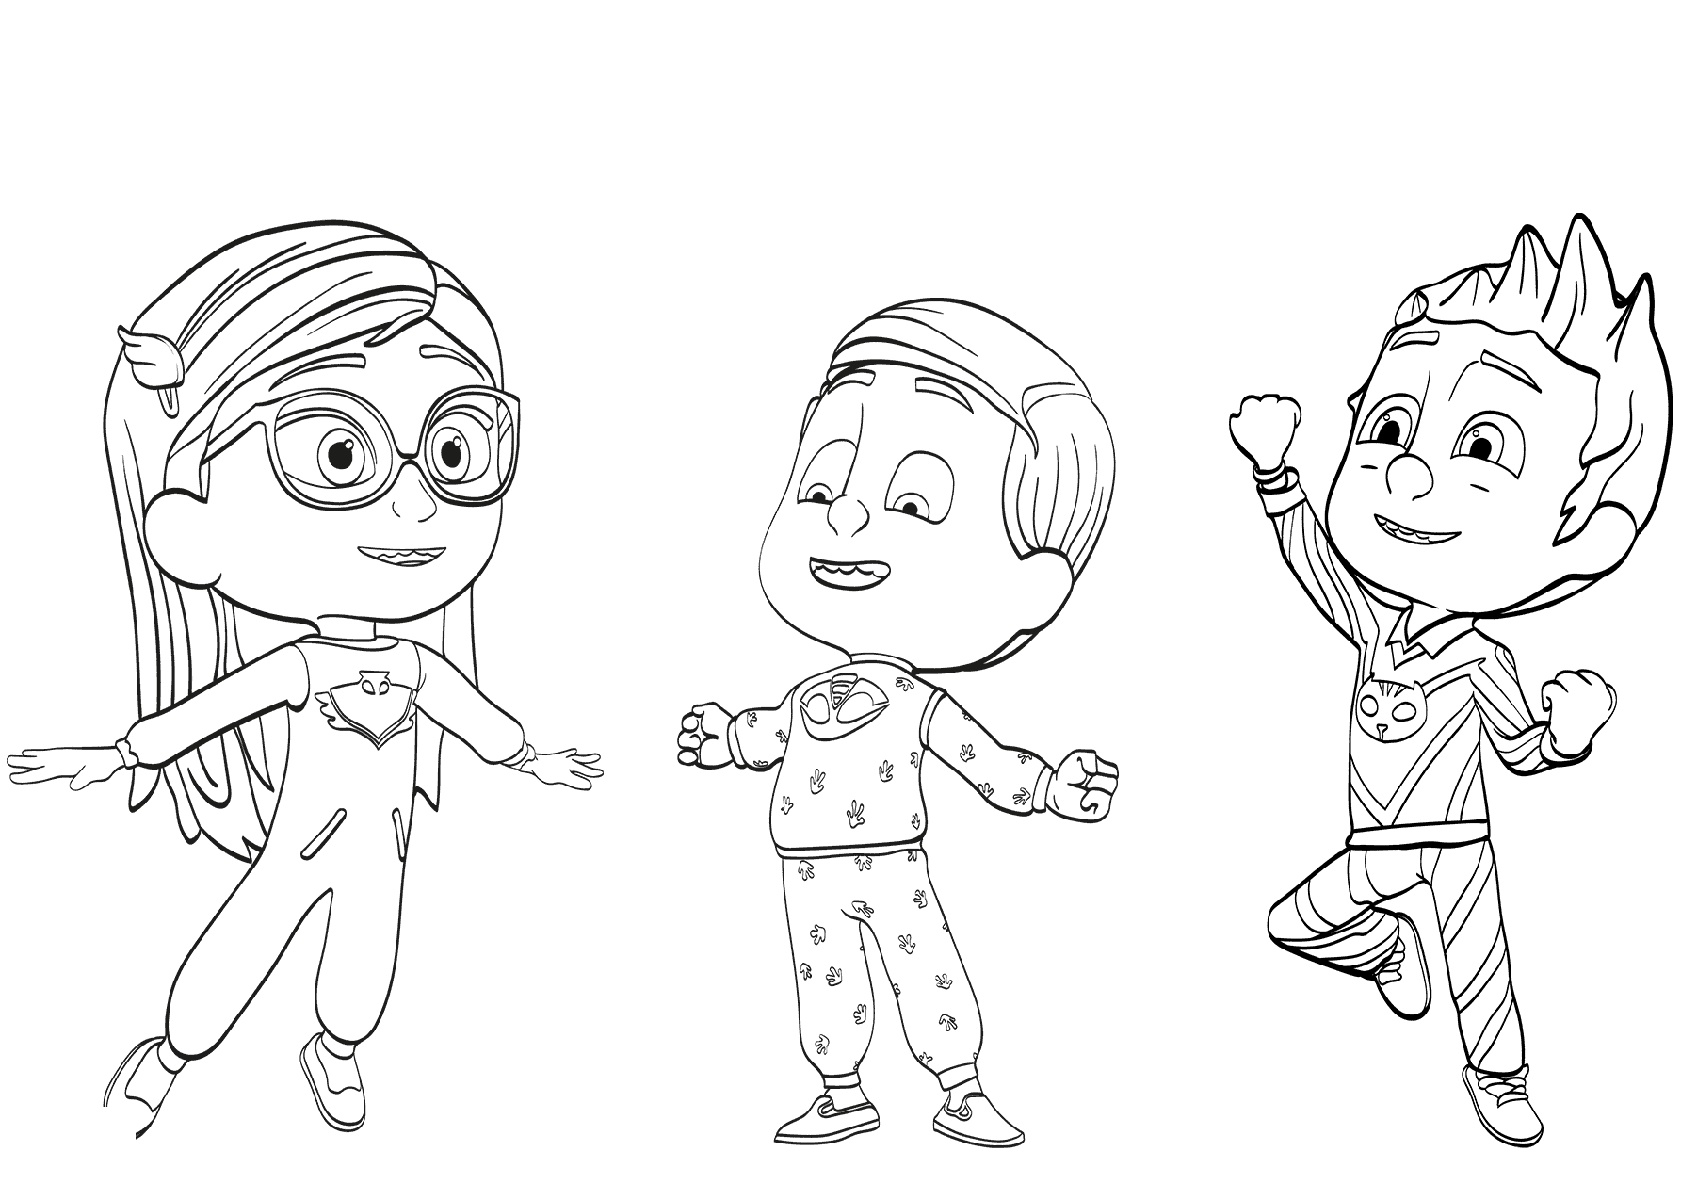 PJ Mask Coloring Pages Pajama Heroes